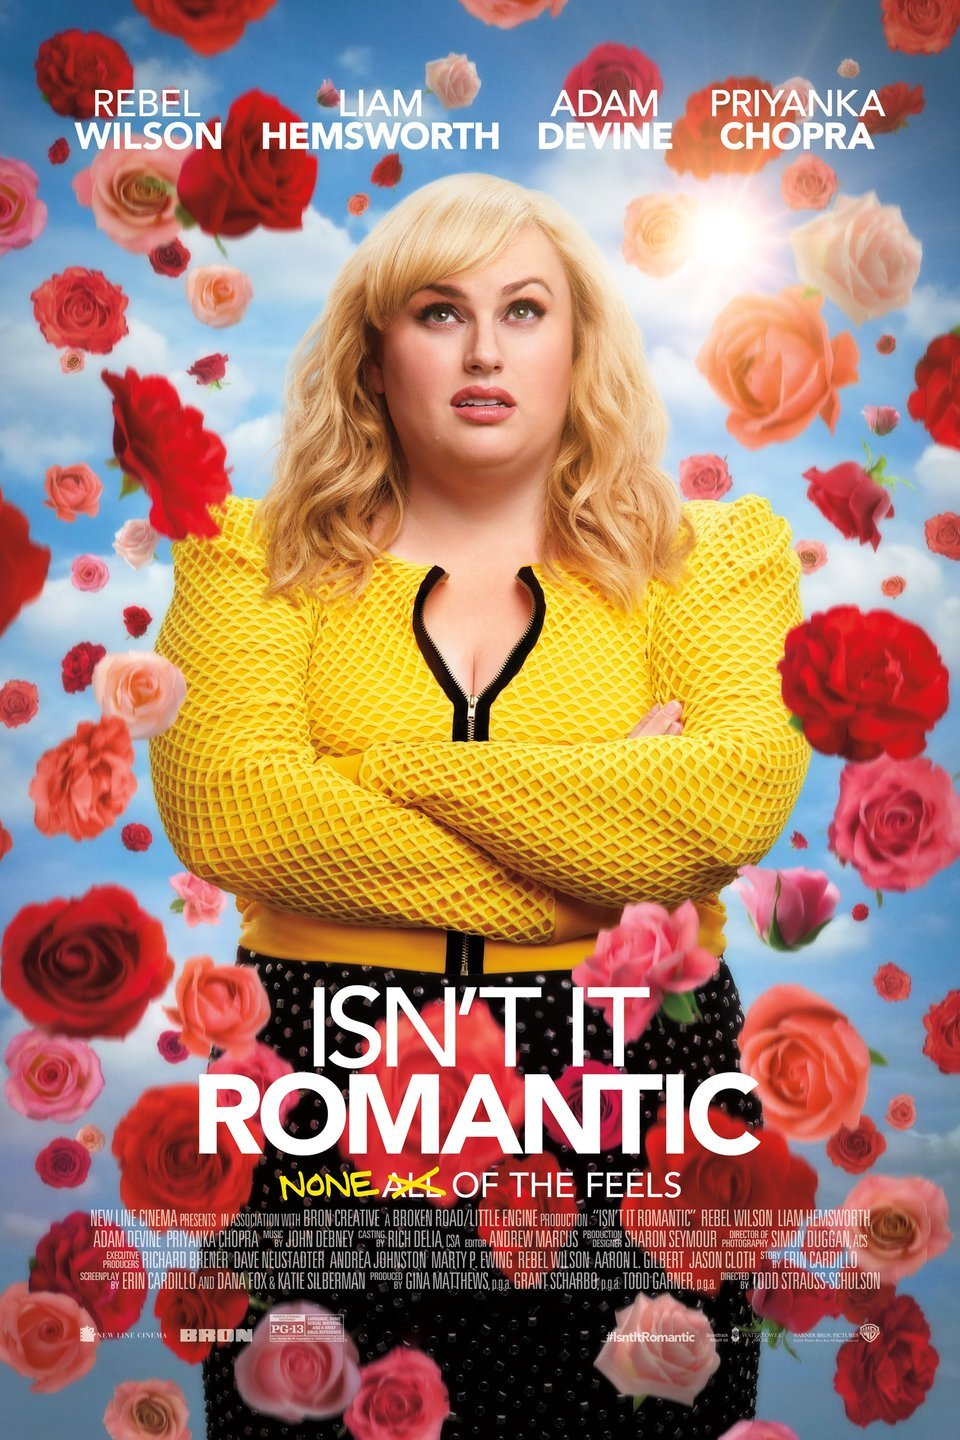 Isn't It Romantic is out in theaters.